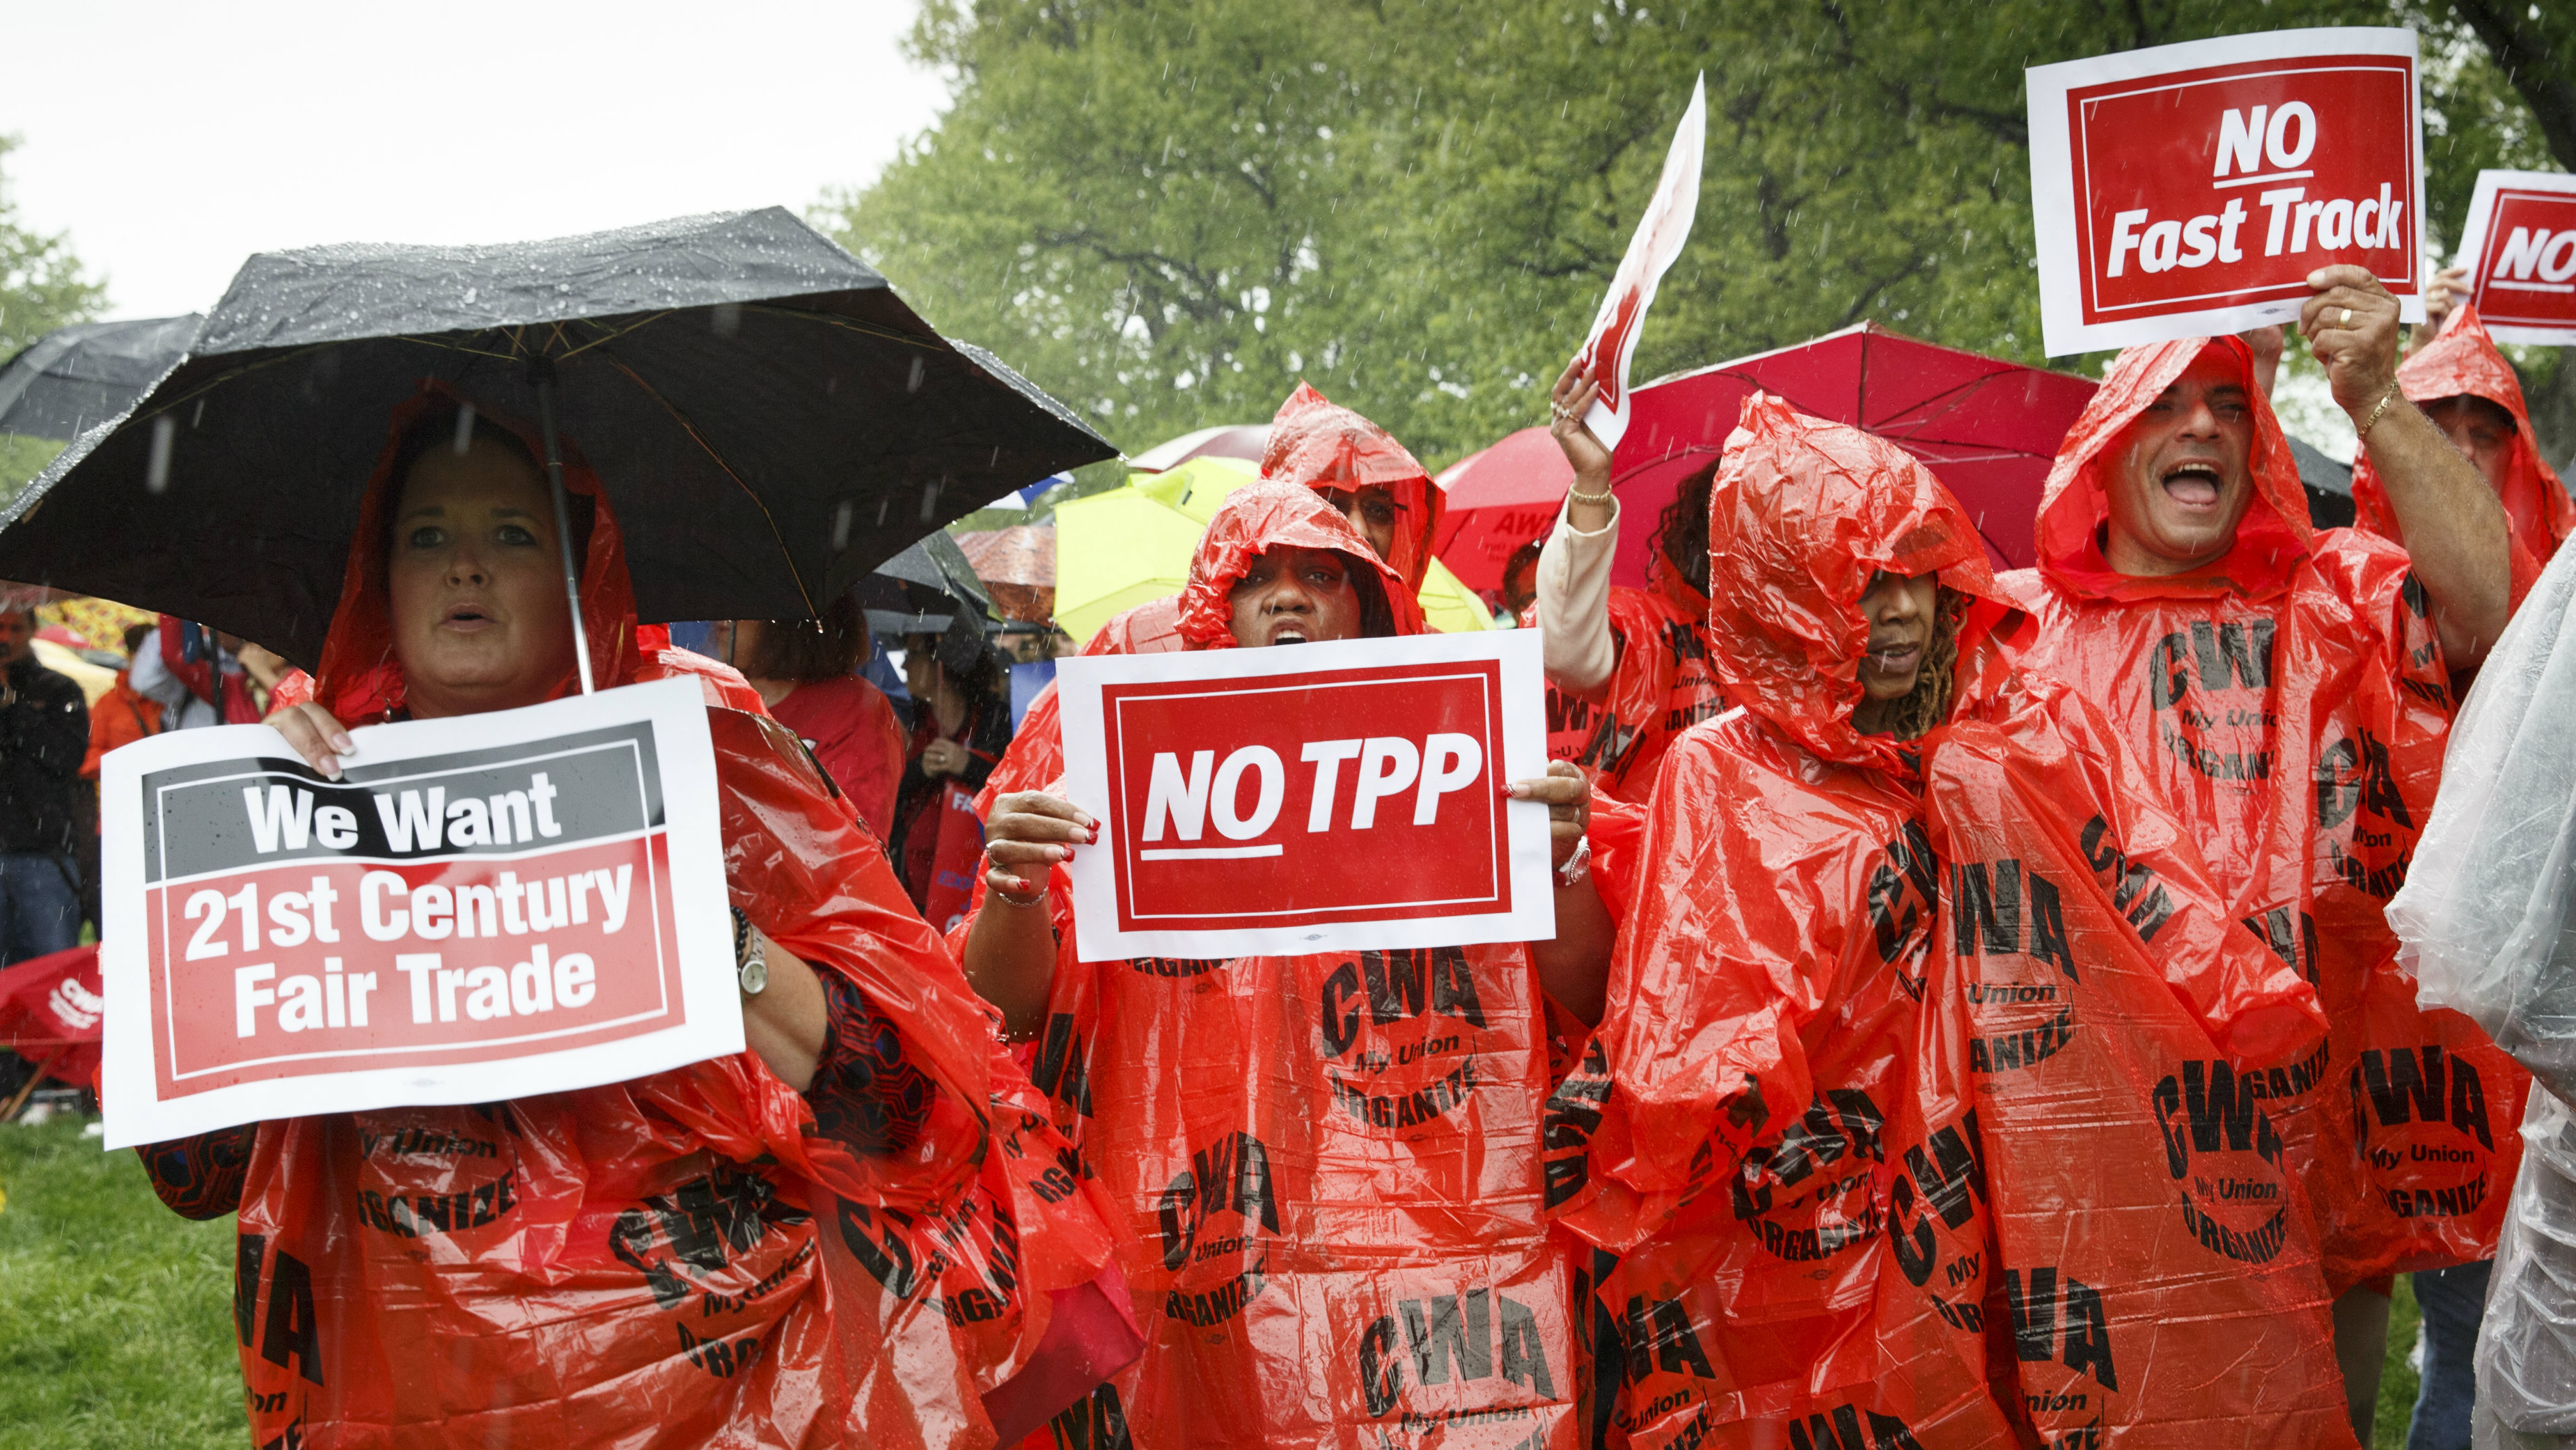 Demonstrators rally for fair trade at the Capitol in Washington, Wednesday, May 7, 2014. The signs refer to the proposed expansion of the Trans-Pacific Partnership, TPP, and, to fast track negotiating authority, also called trade promotion authority or TPA, for trade agreements negotiated by the president.